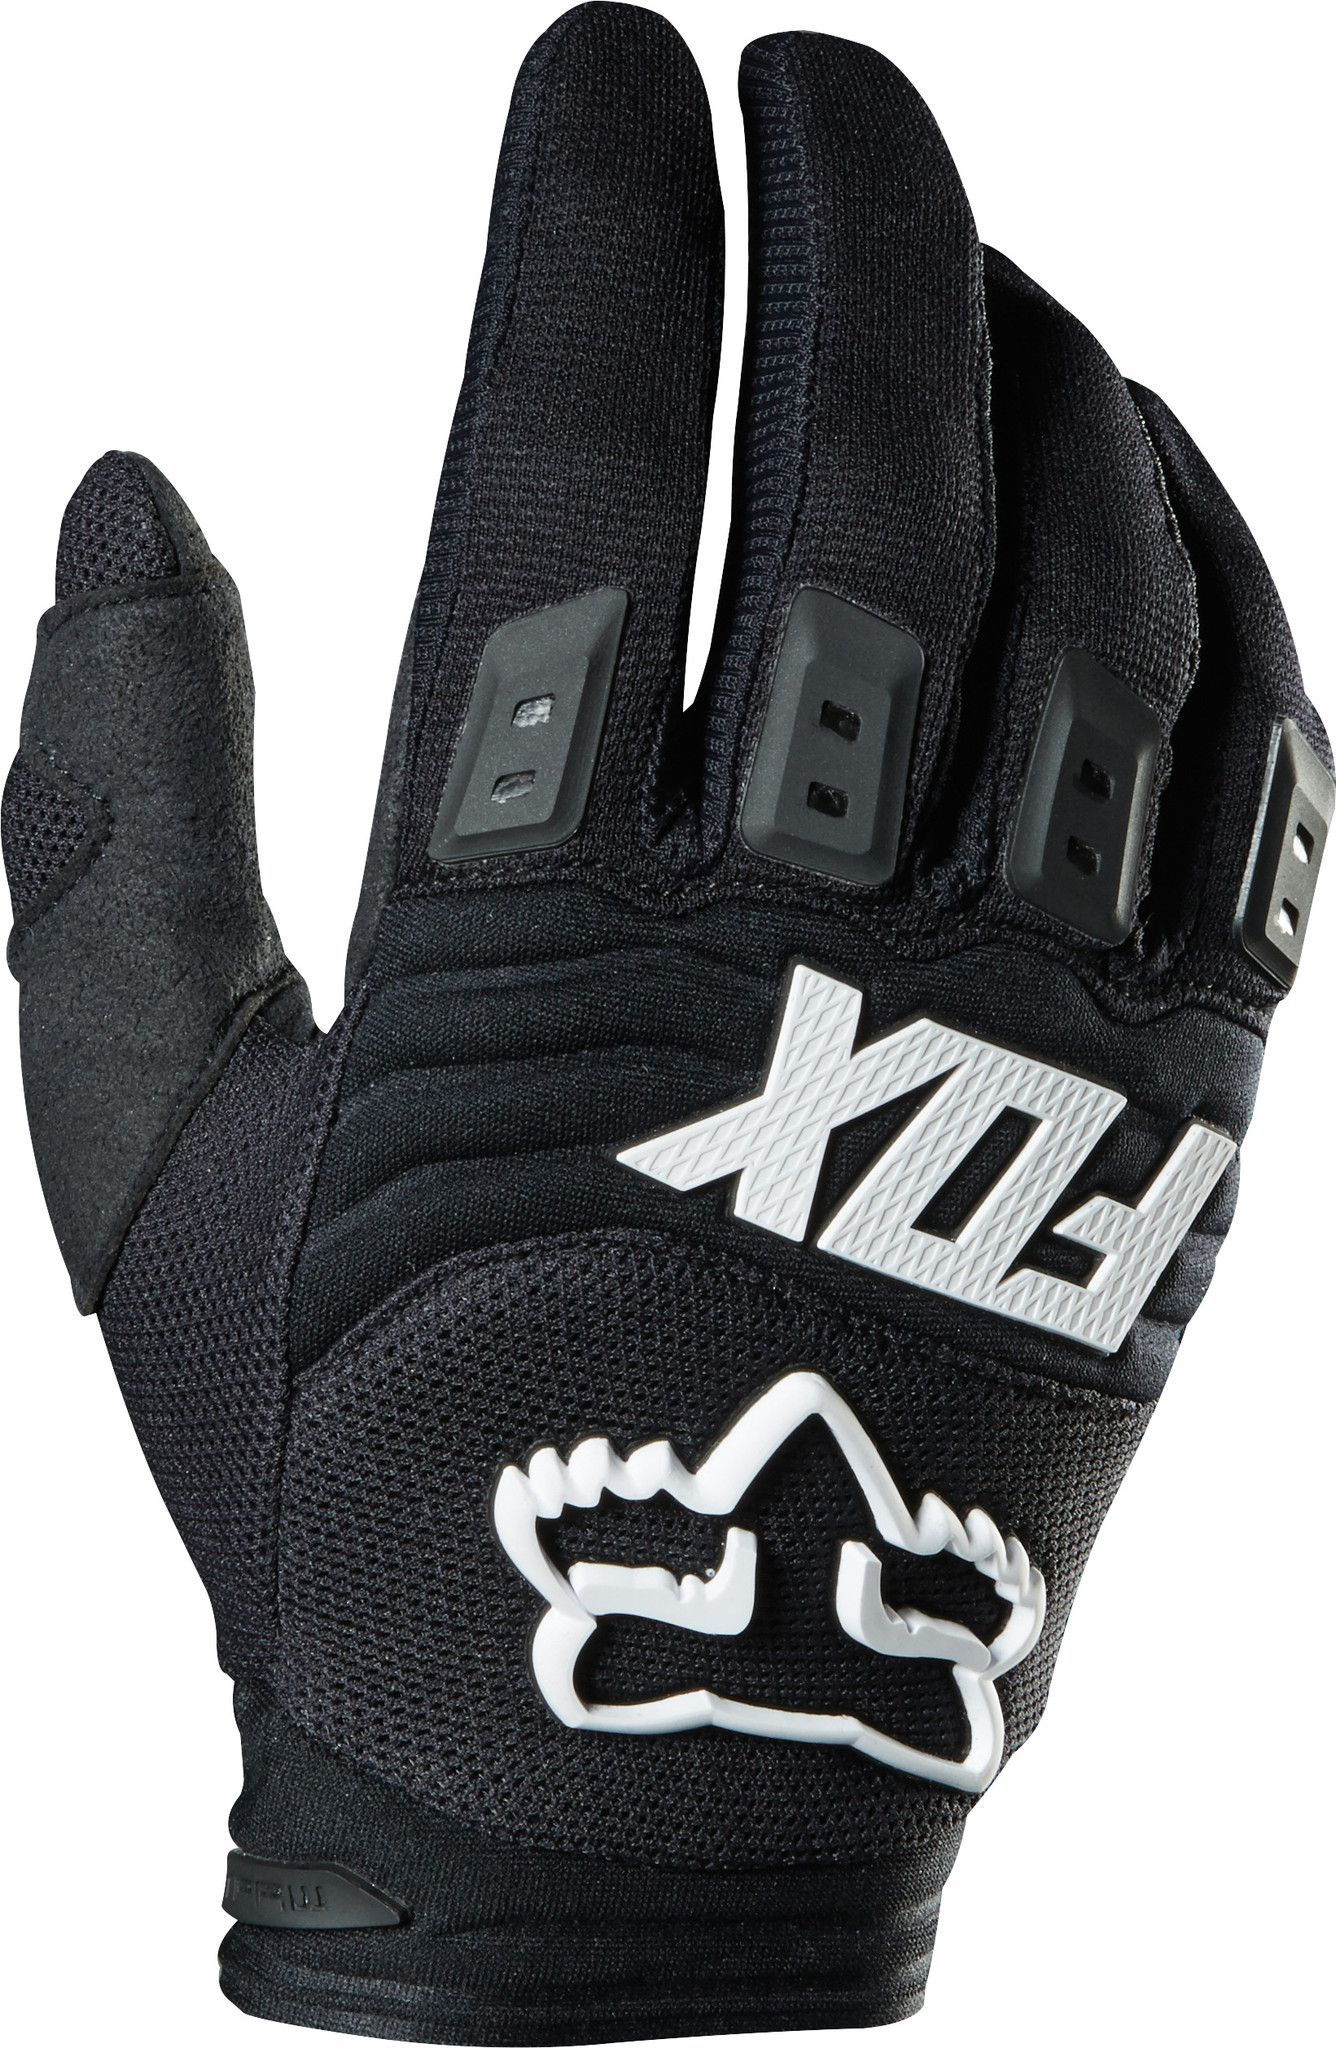 Fox Dirtpaw Gloves For Mtb Bmx Mx Pair From Xsportsprotective With Images Motorcycle Camping Gear Bike Gloves Bmx Helmets